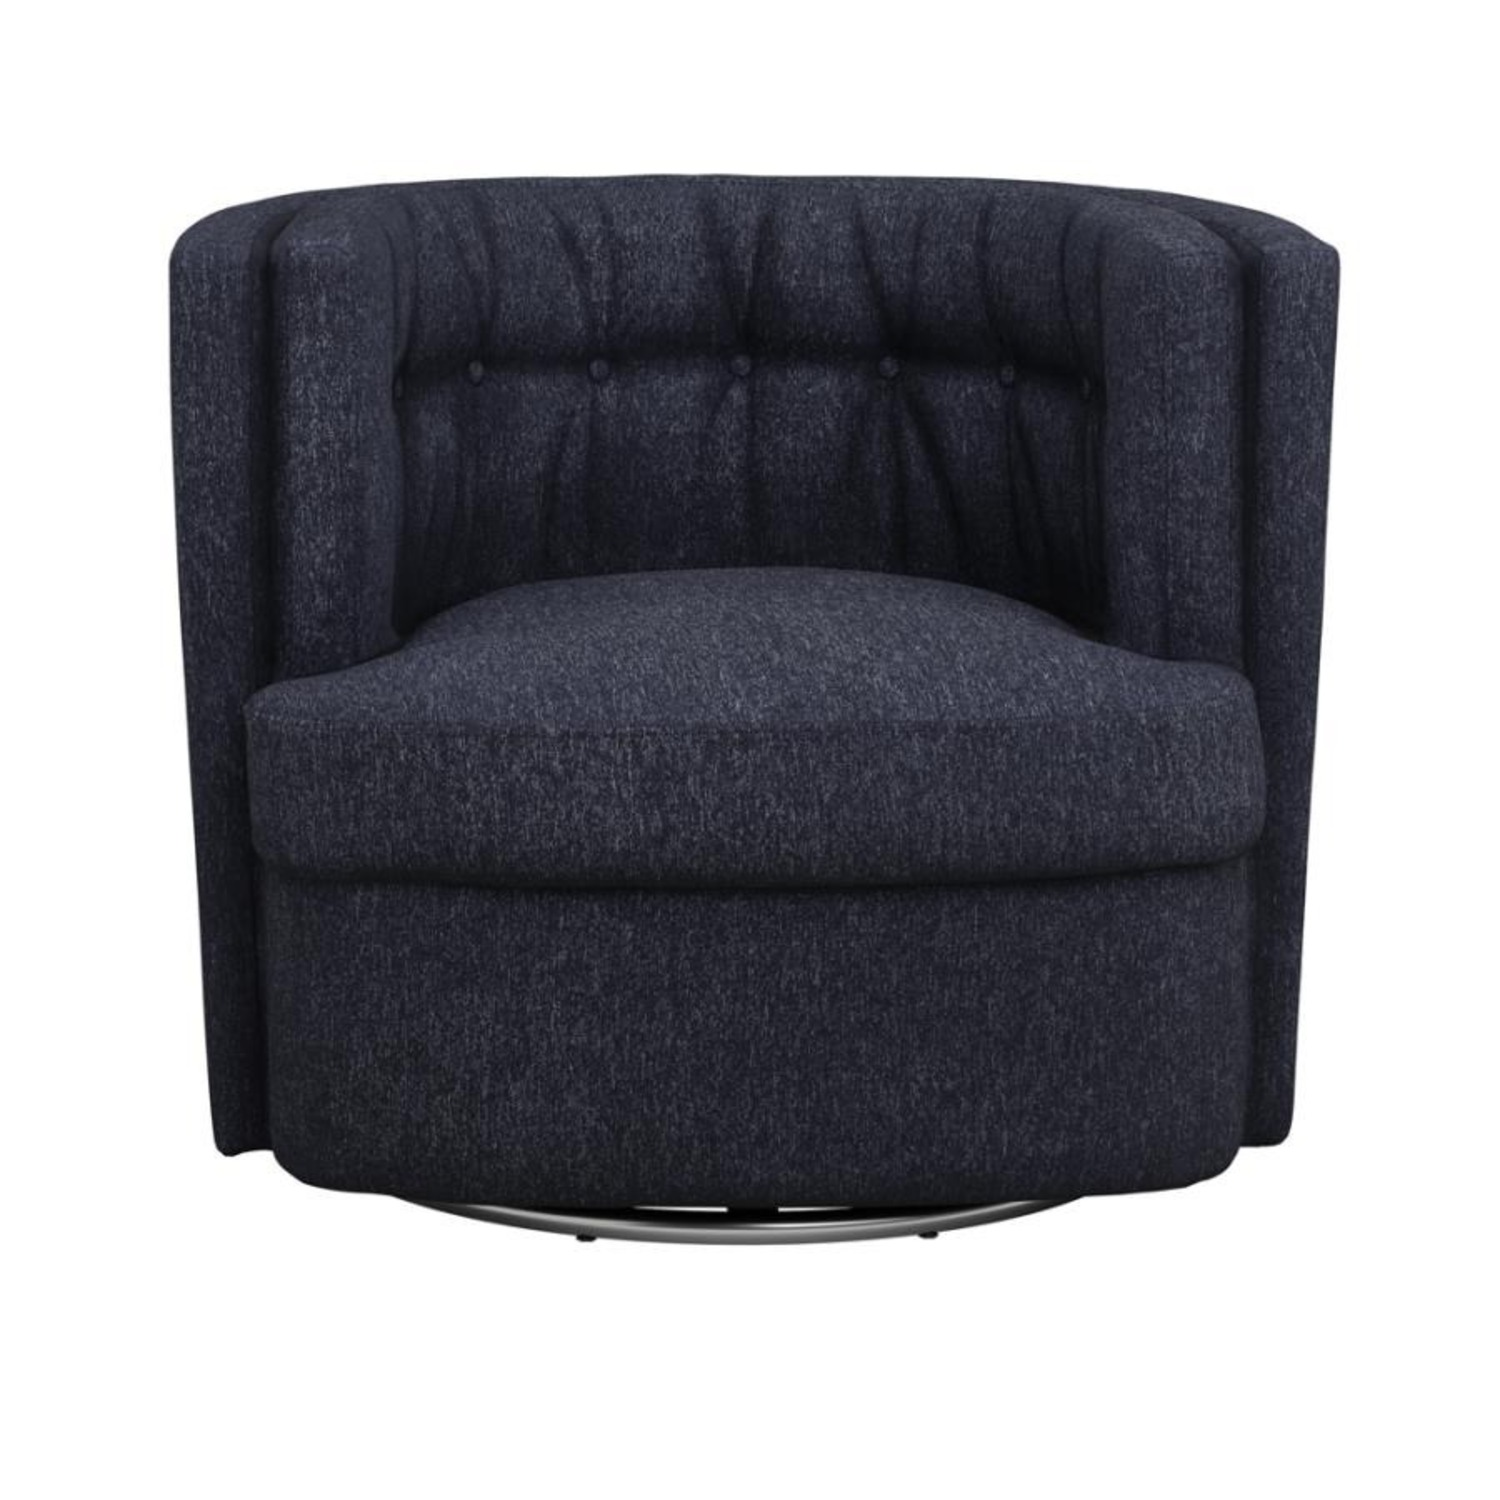 Swivel Accent Chair In Dark Blue Low Pile Chenille - image-1